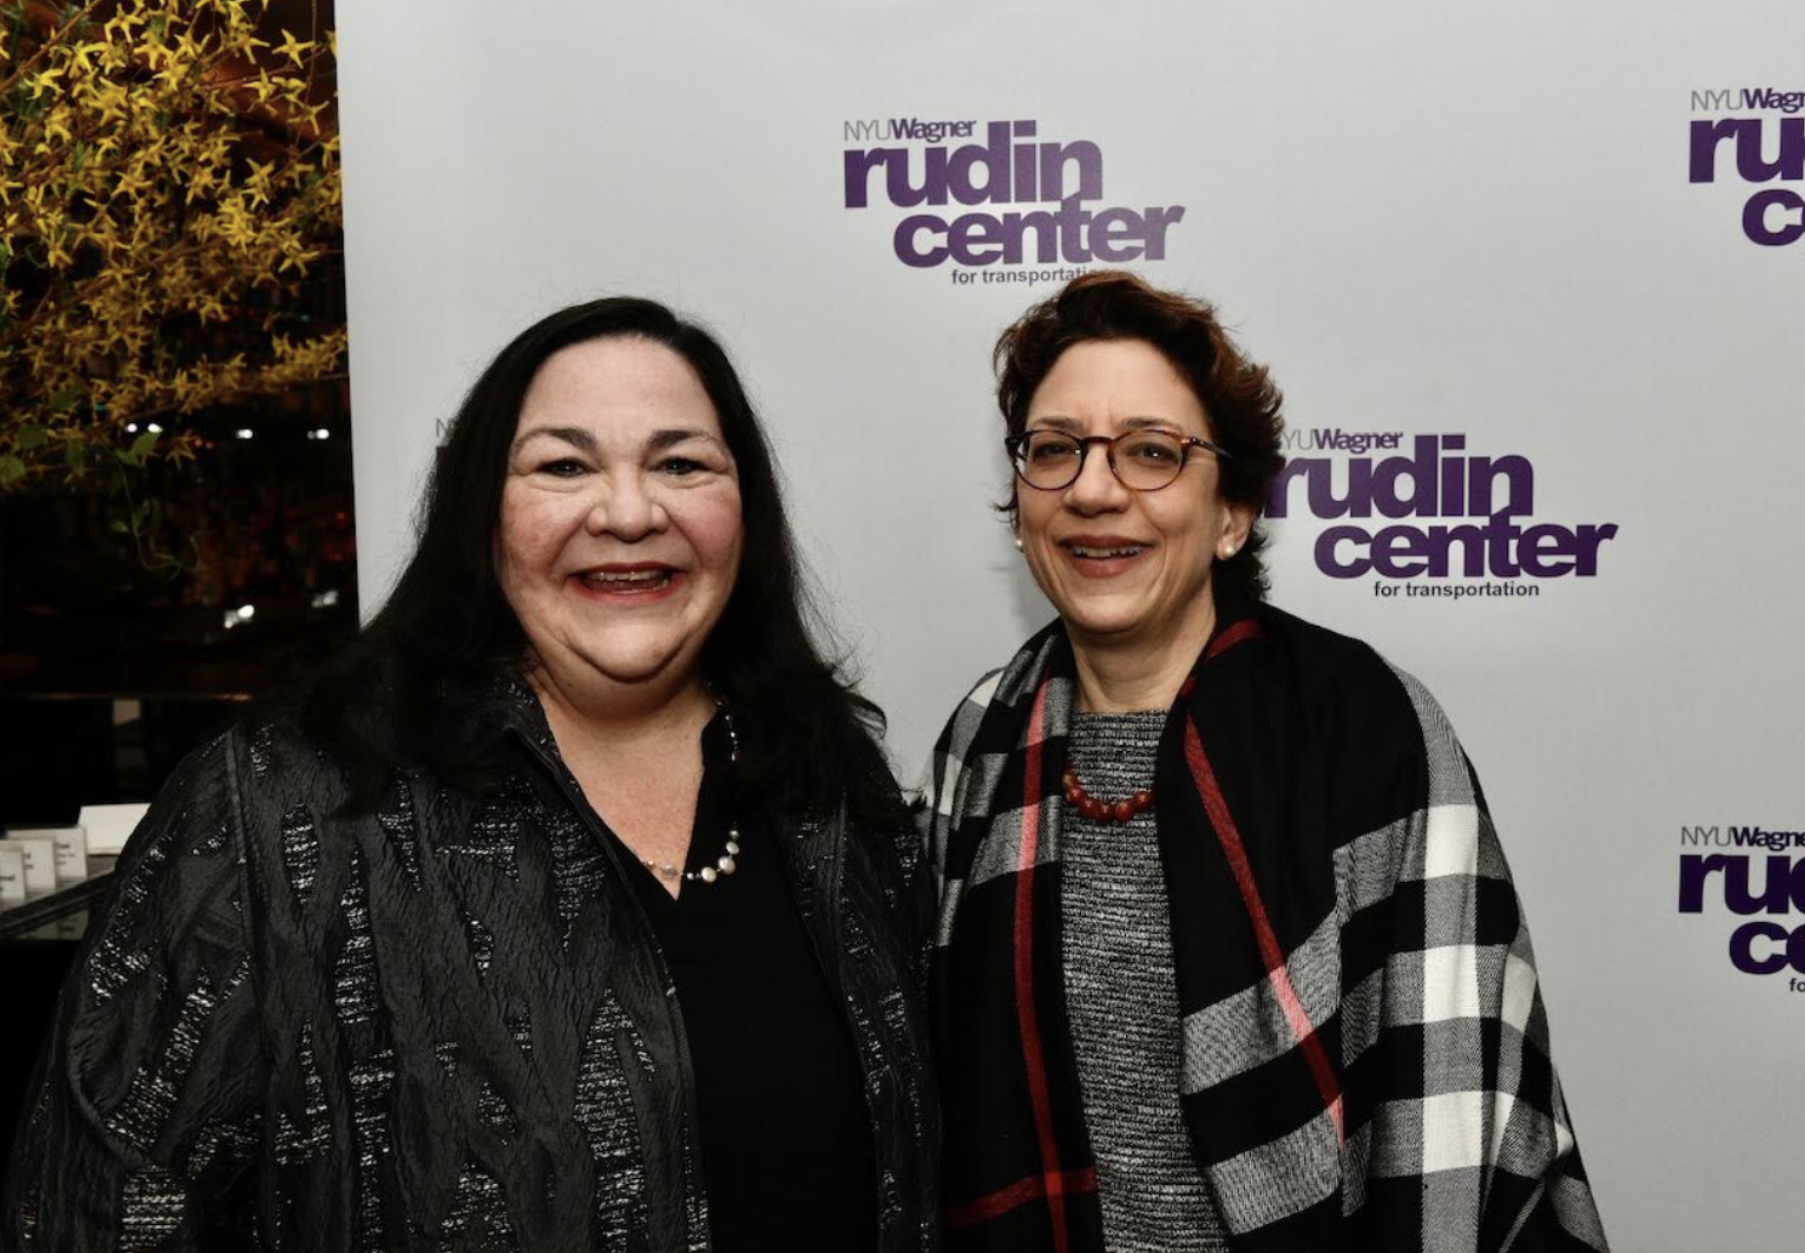 Polly Trottenberg, NYC DOT Commissioner, and Marie Therese Dominguez, NY State DOT Commissioner